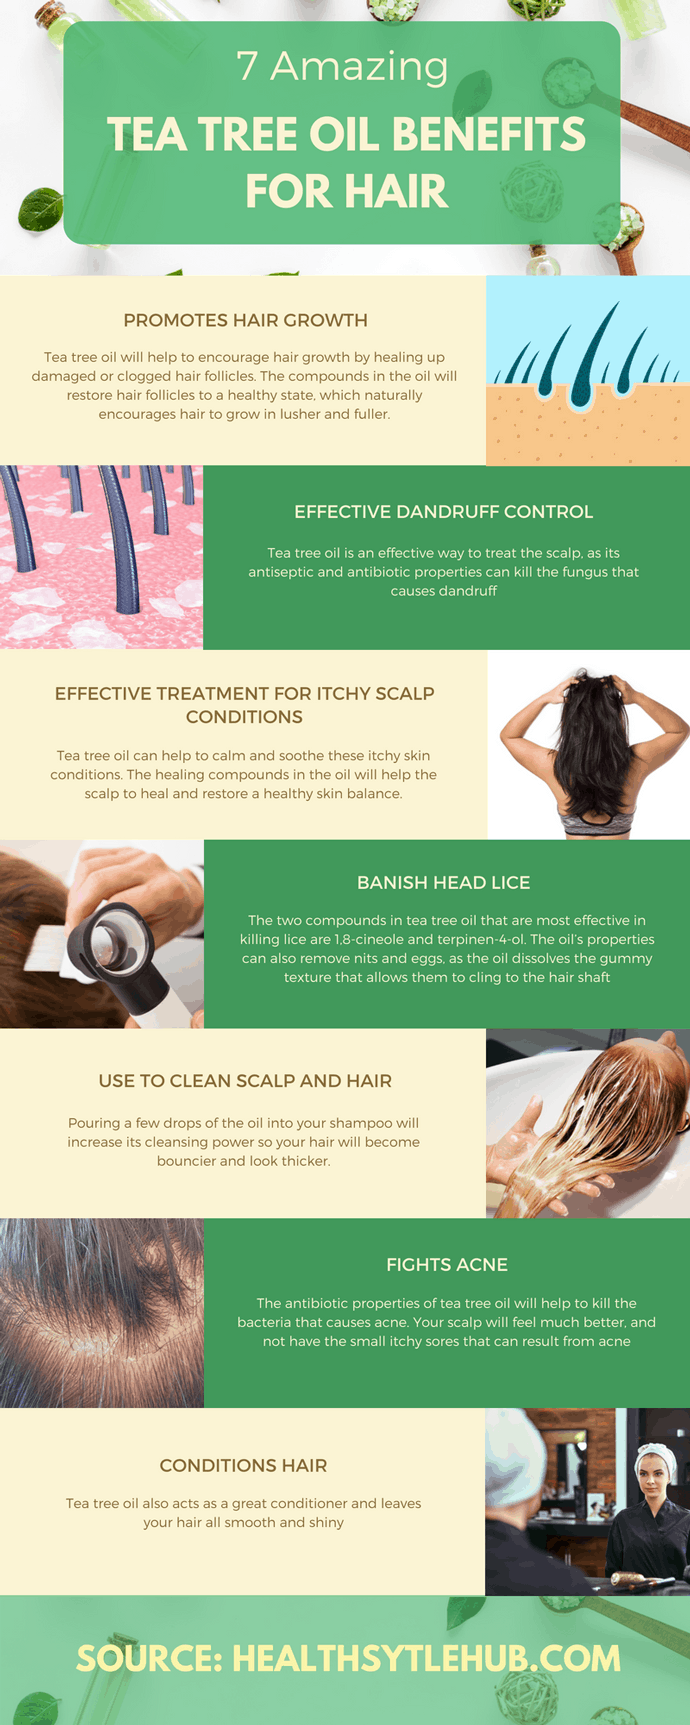 amazing tea tree oil benefits for hair